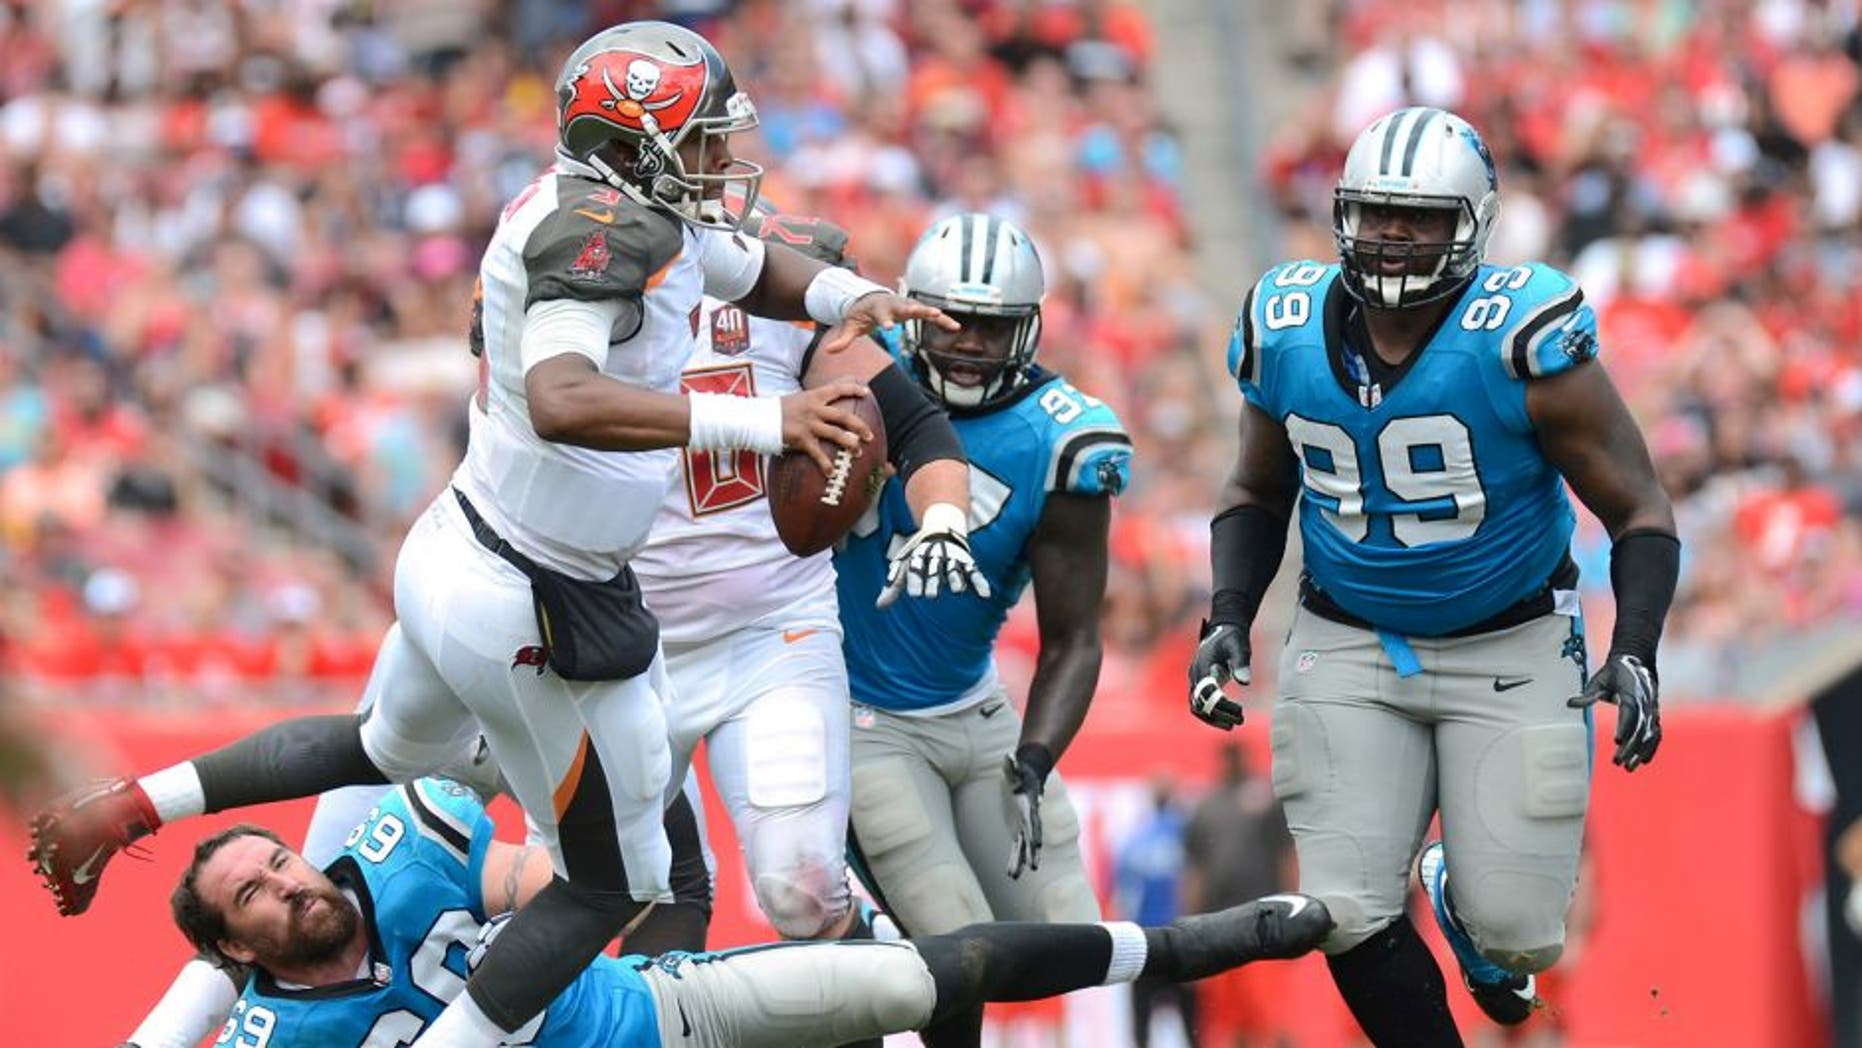 Oct 4, 2015; Tampa, FL, USA; Tampa Bay Buccaneers quarterback Jameis Winston (3) runs with the ball in the first half against the Carolina Panthers at Raymond James Stadium. Mandatory Credit: Jonathan Dyer-USA TODAY Sports